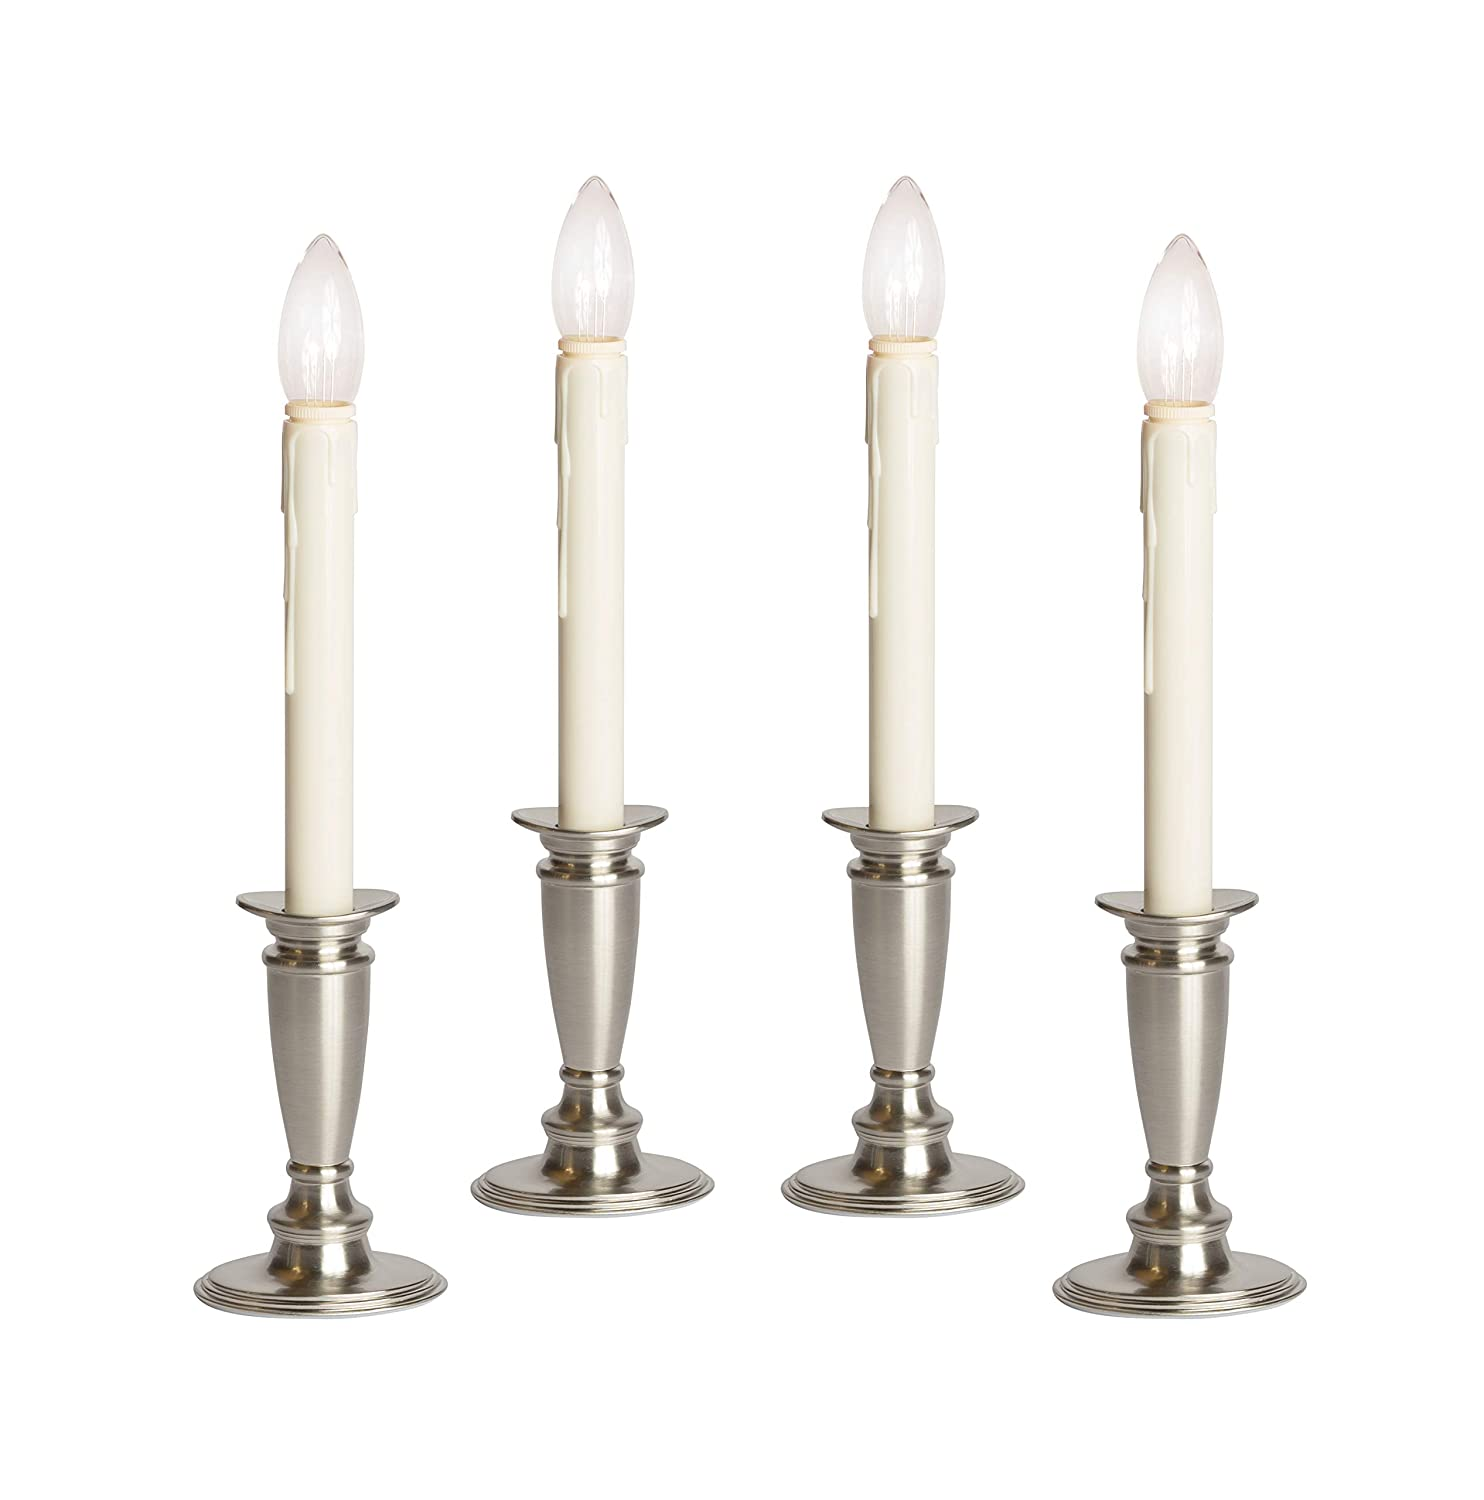 Brushed Silver Set of 4 Battery Operated Window Candles